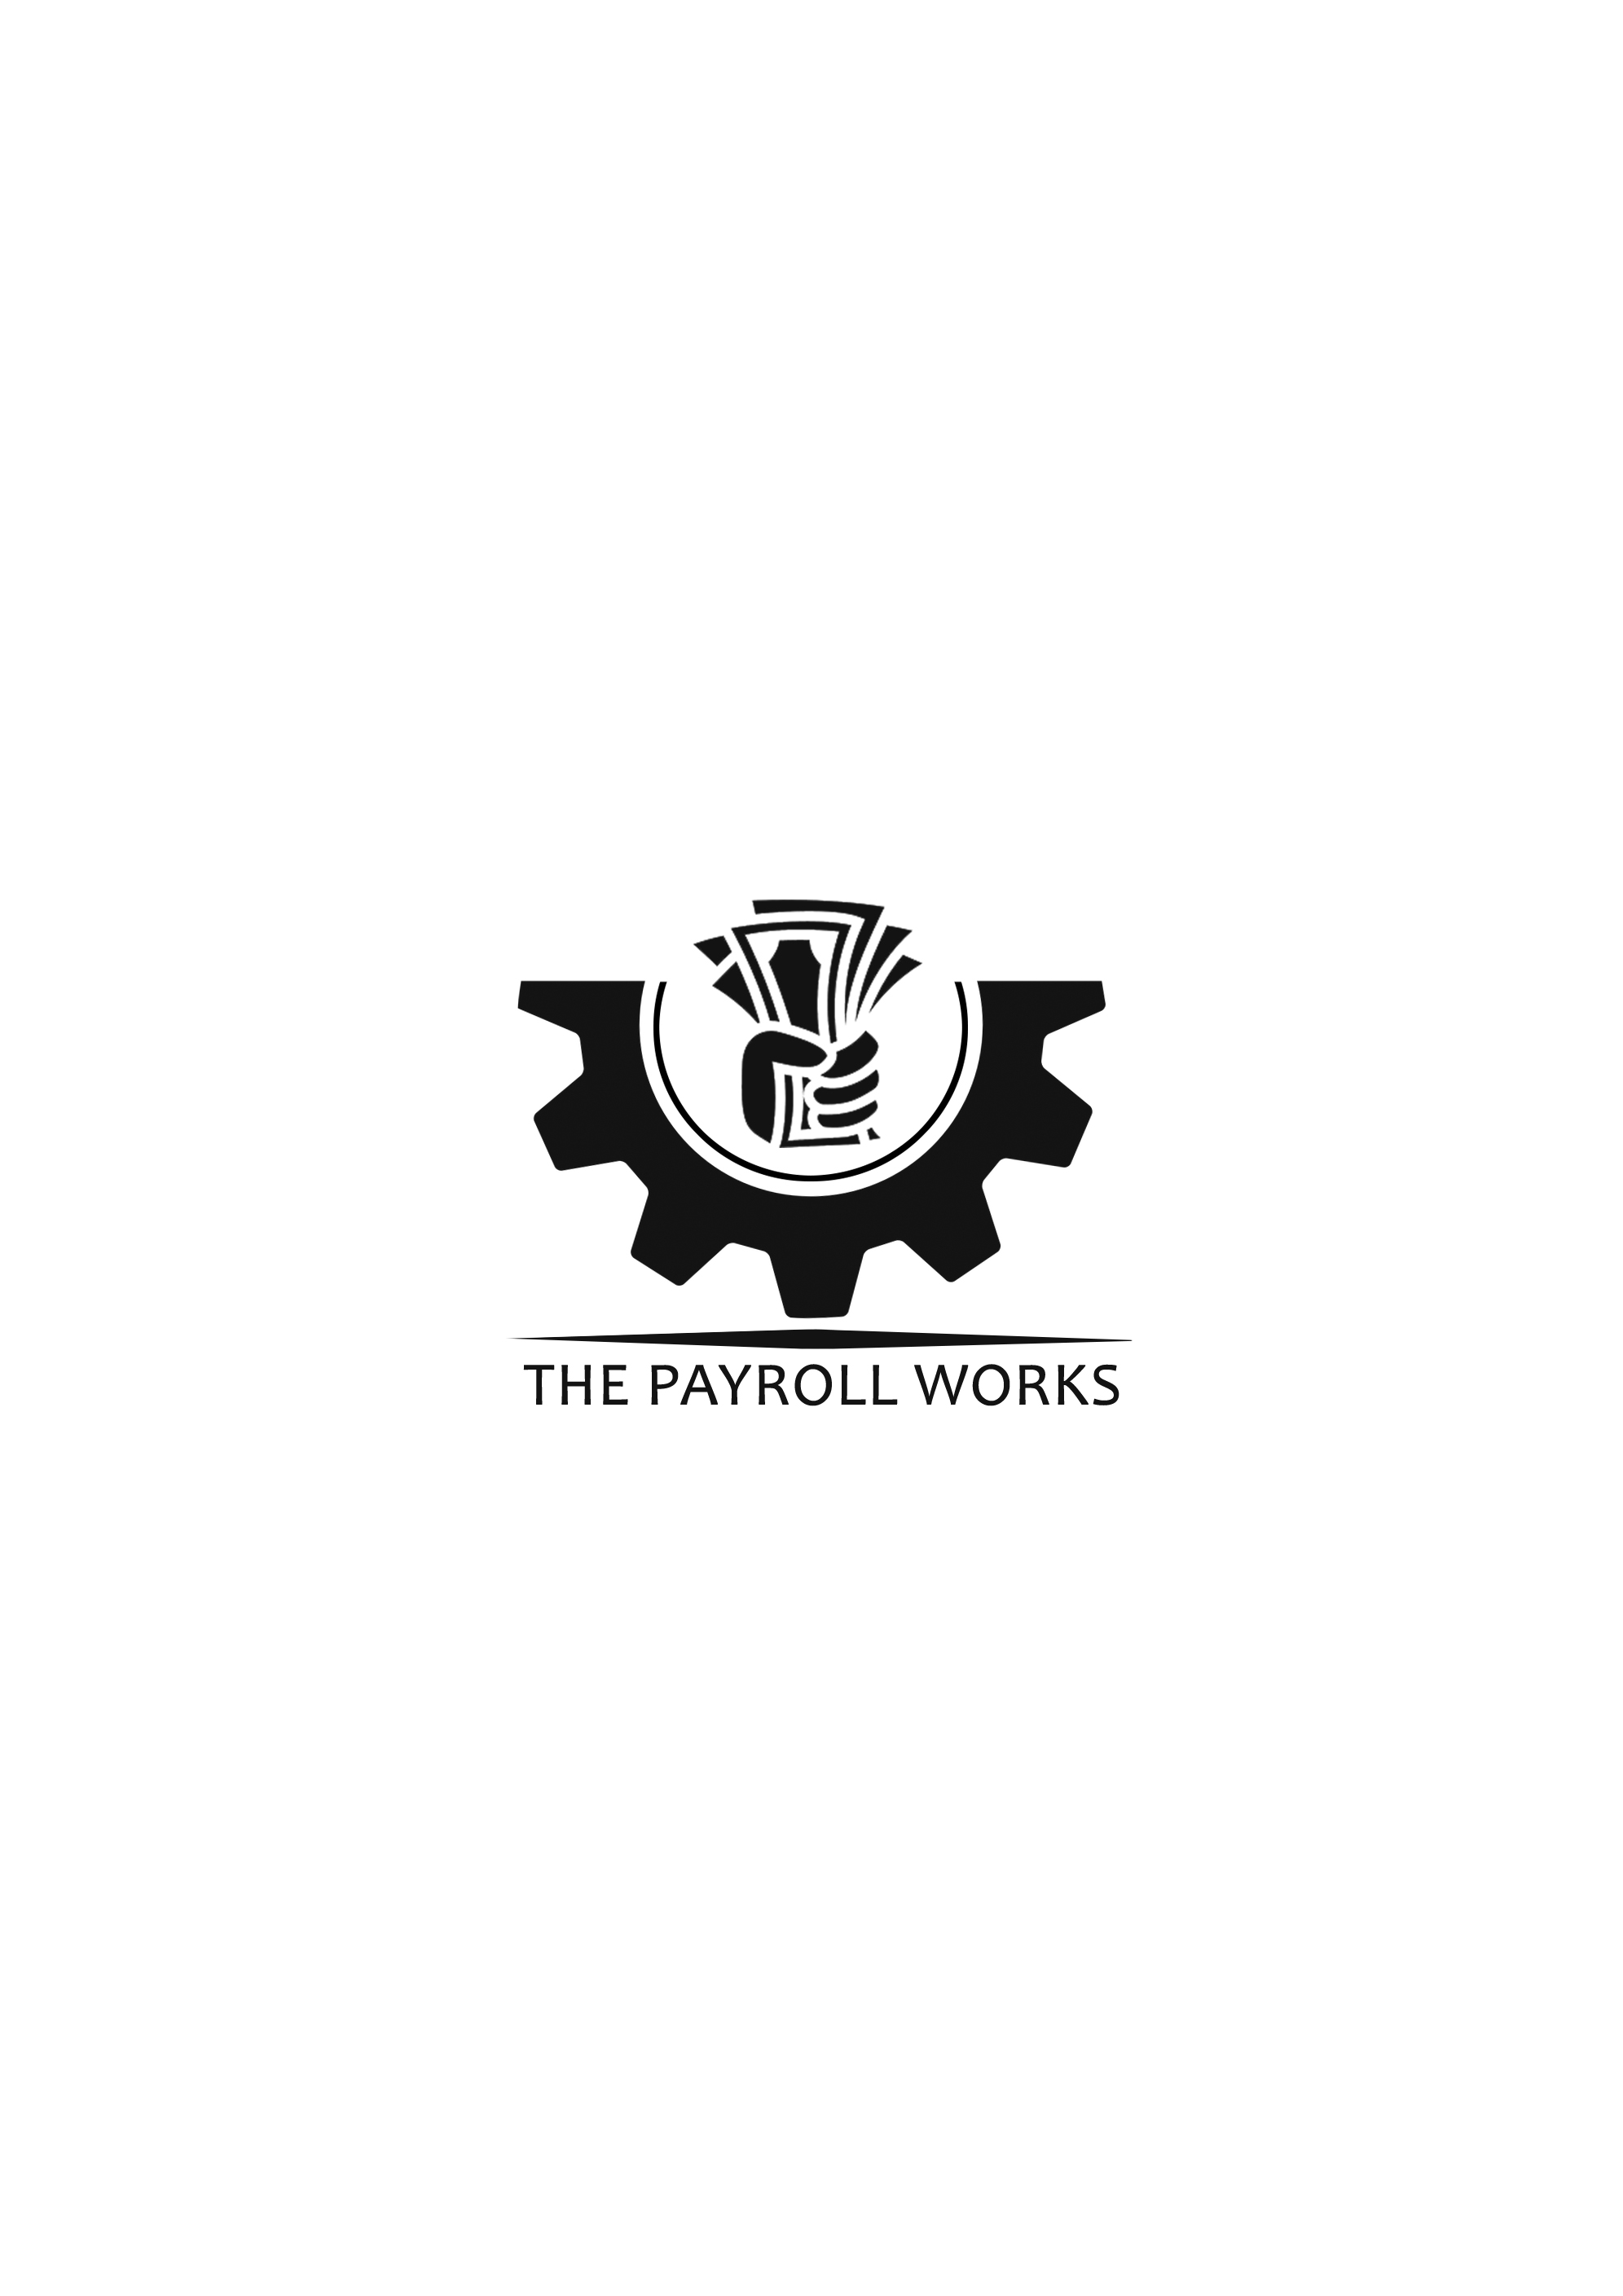 Logo Design by JSDESIGNGROUP - Entry No. 105 in the Logo Design Contest Captivating Logo Design for The Payroll Works.